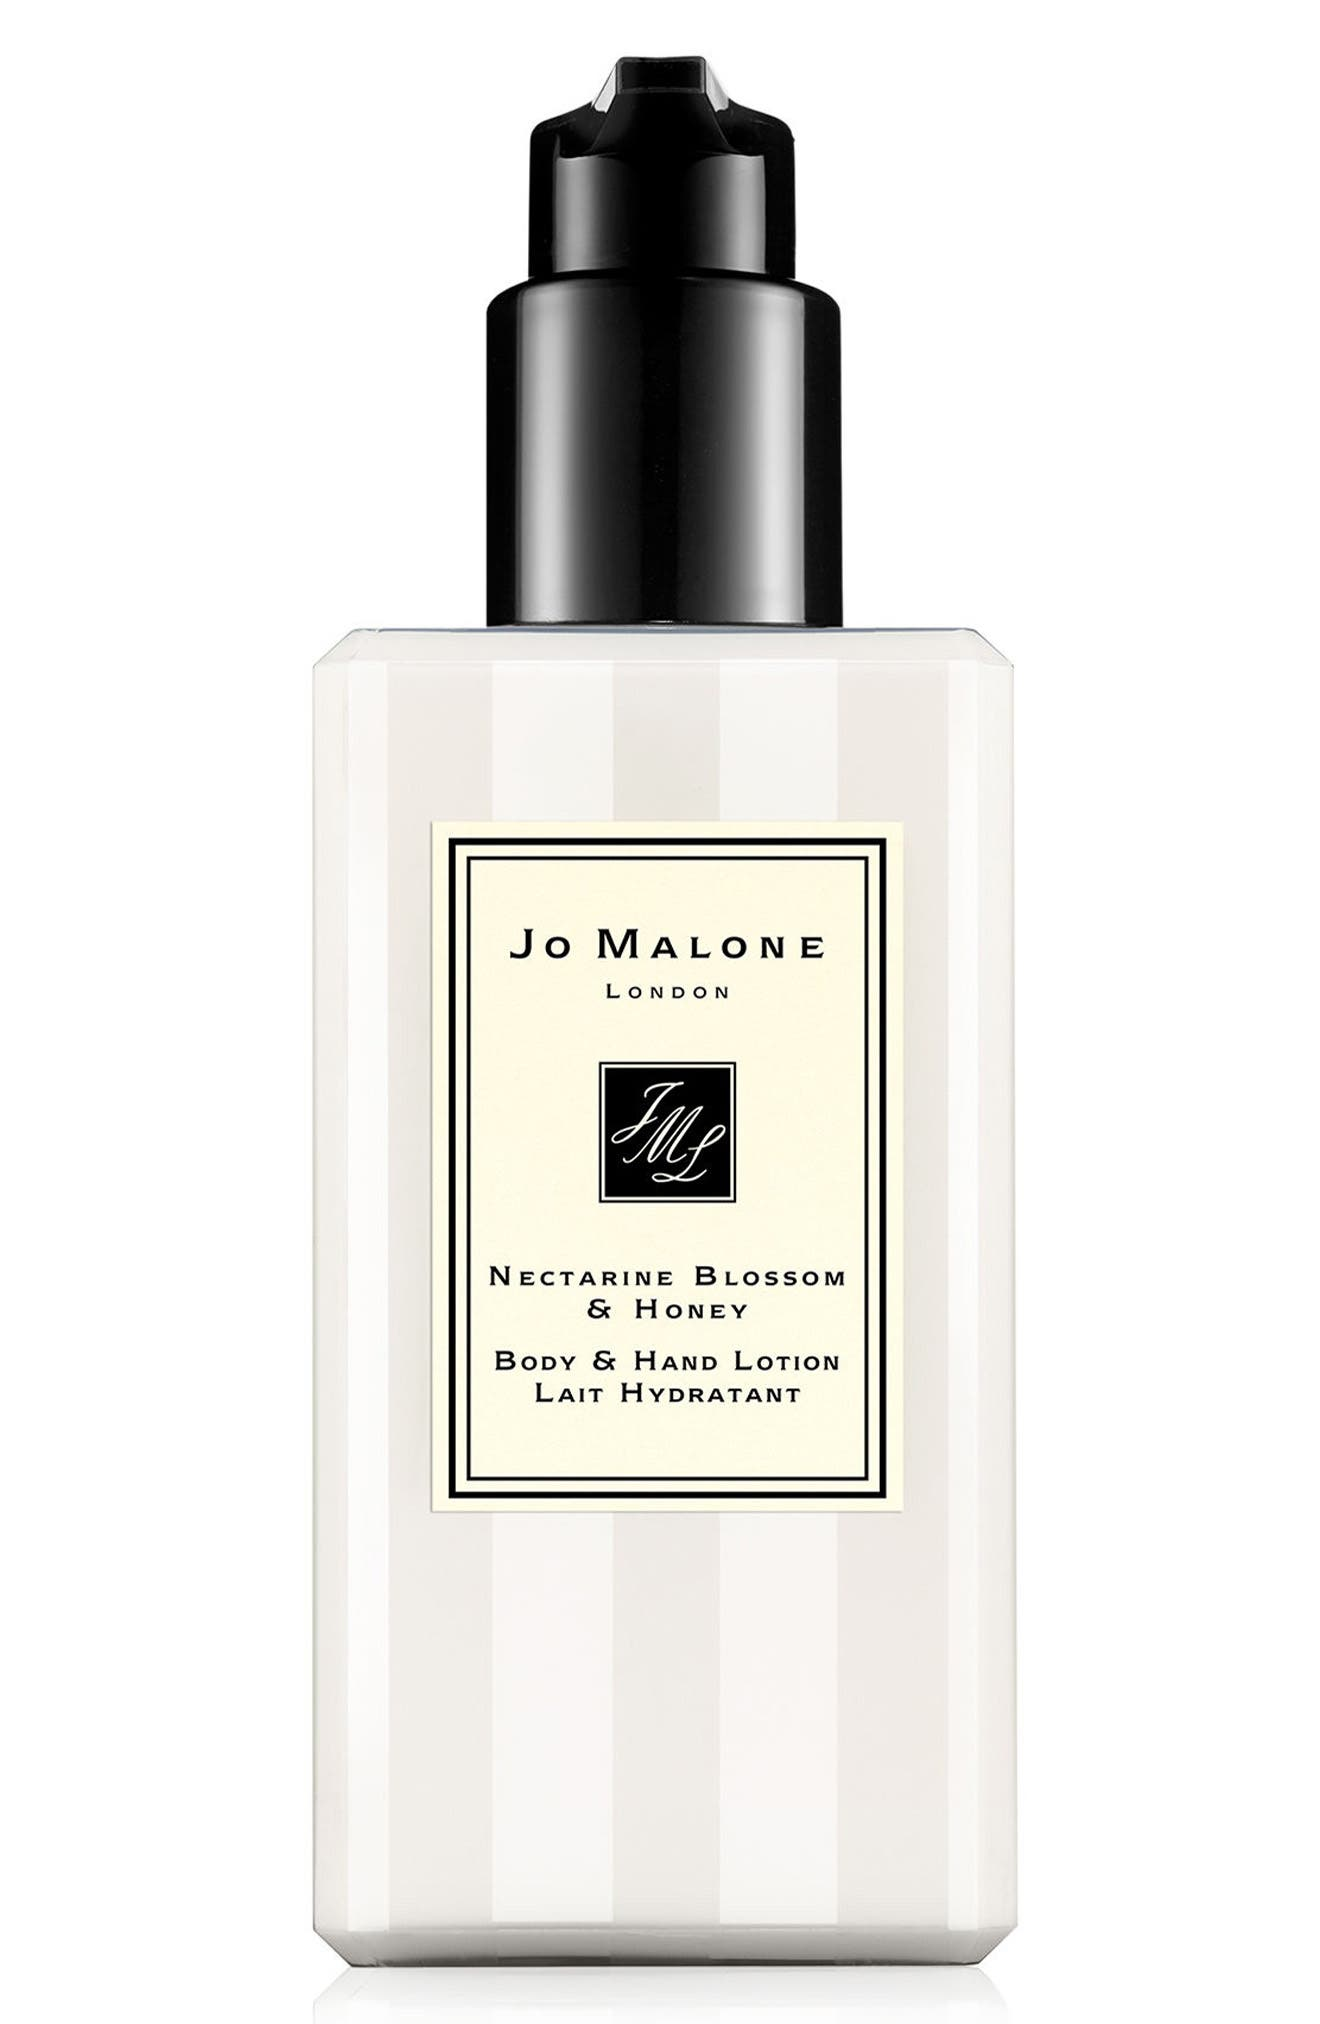 JO MALONE LONDON™ 'Nectarine Blossom & Honey' Body